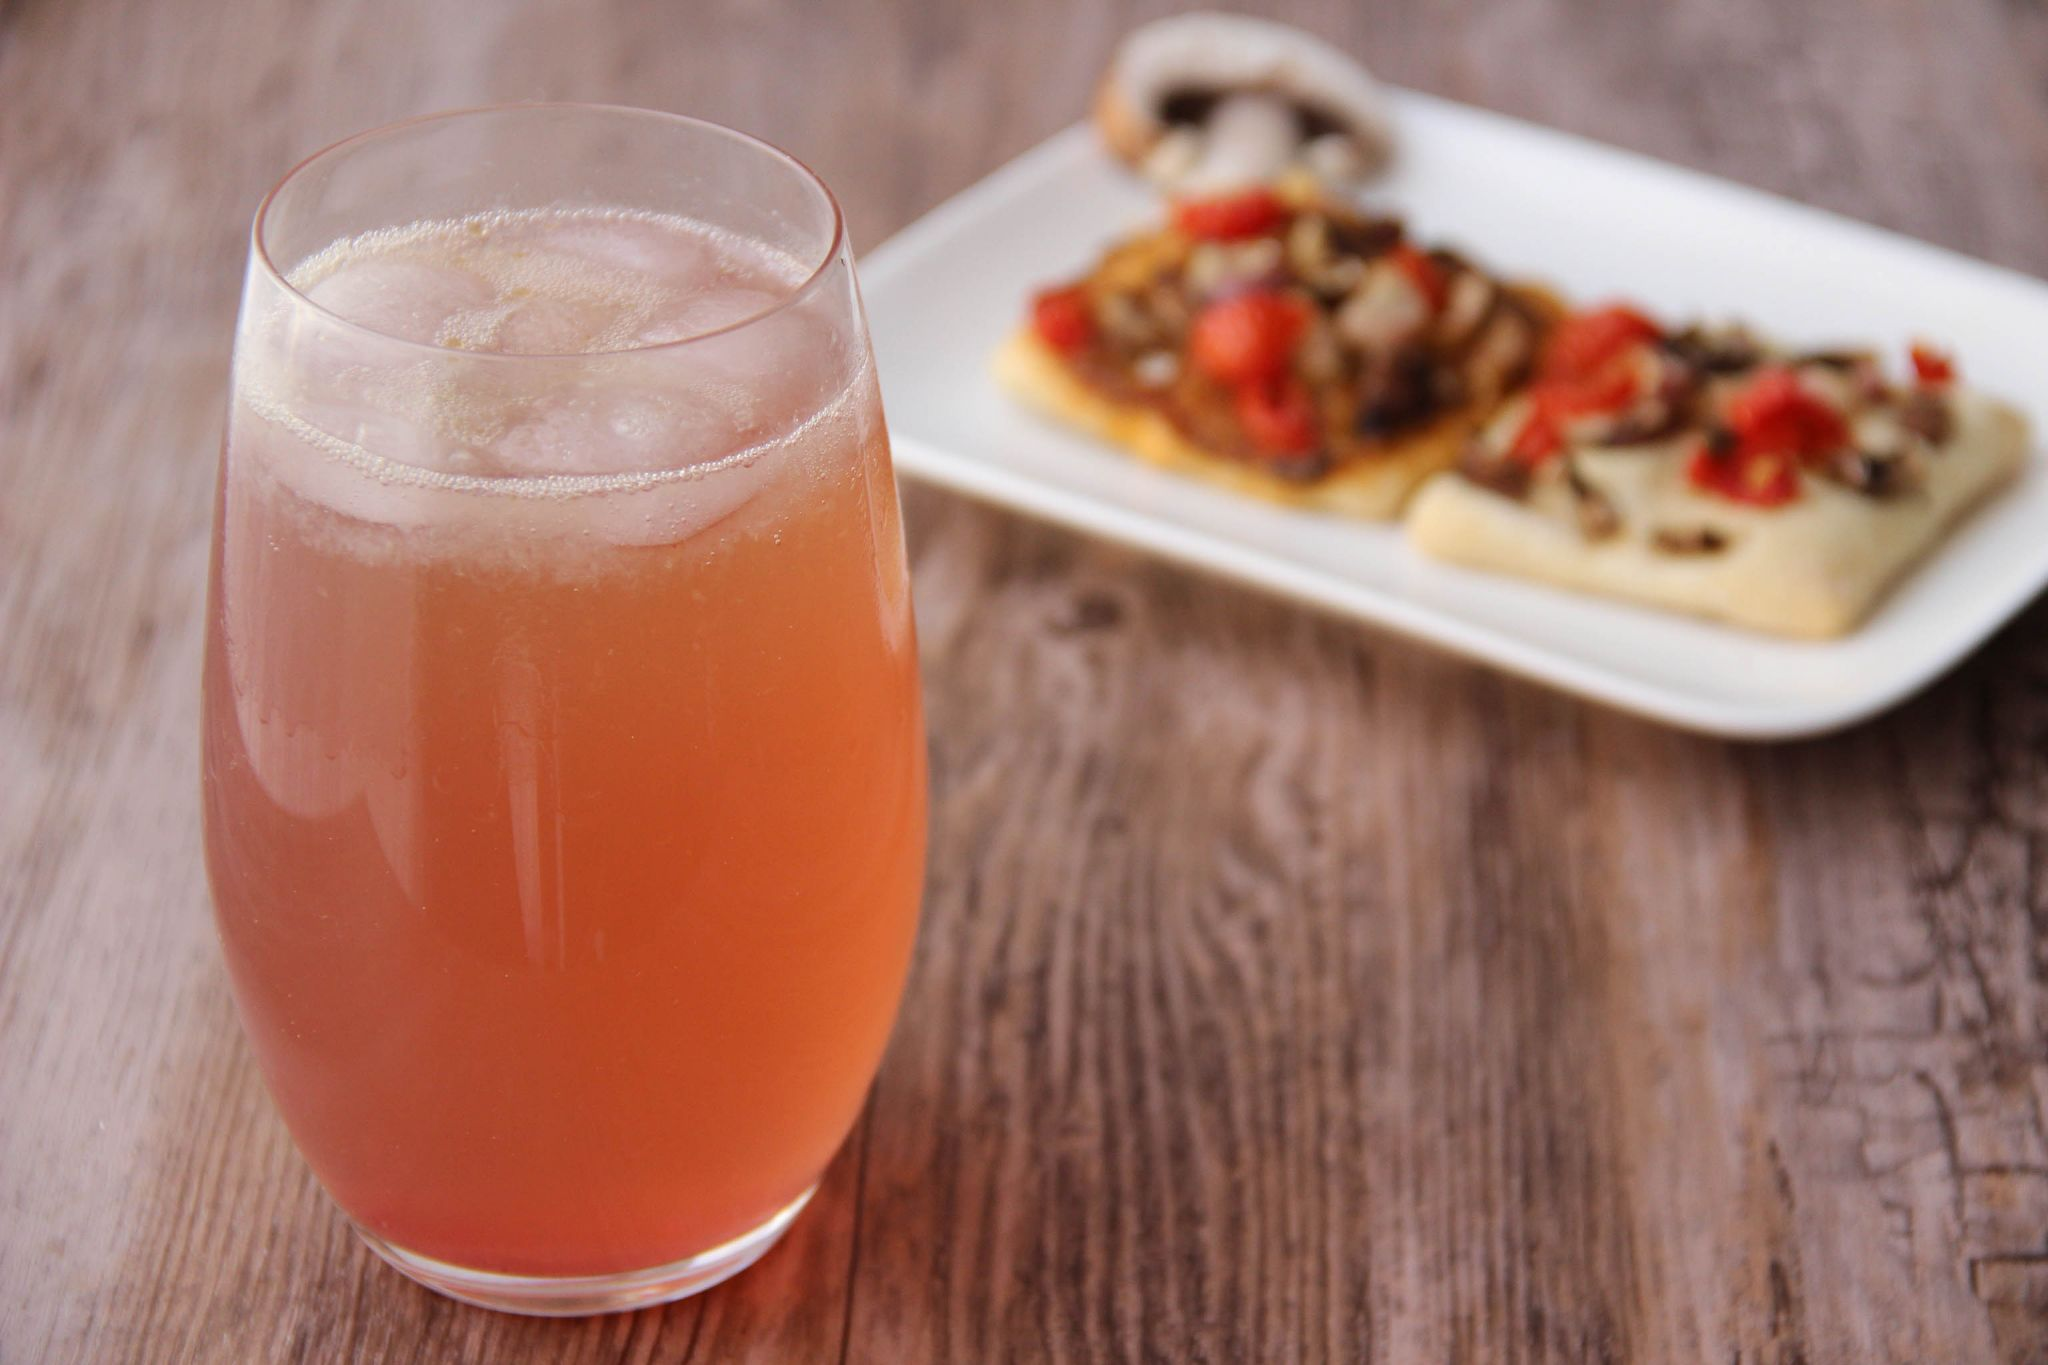 Shirley temple cocktail and mini pizzas